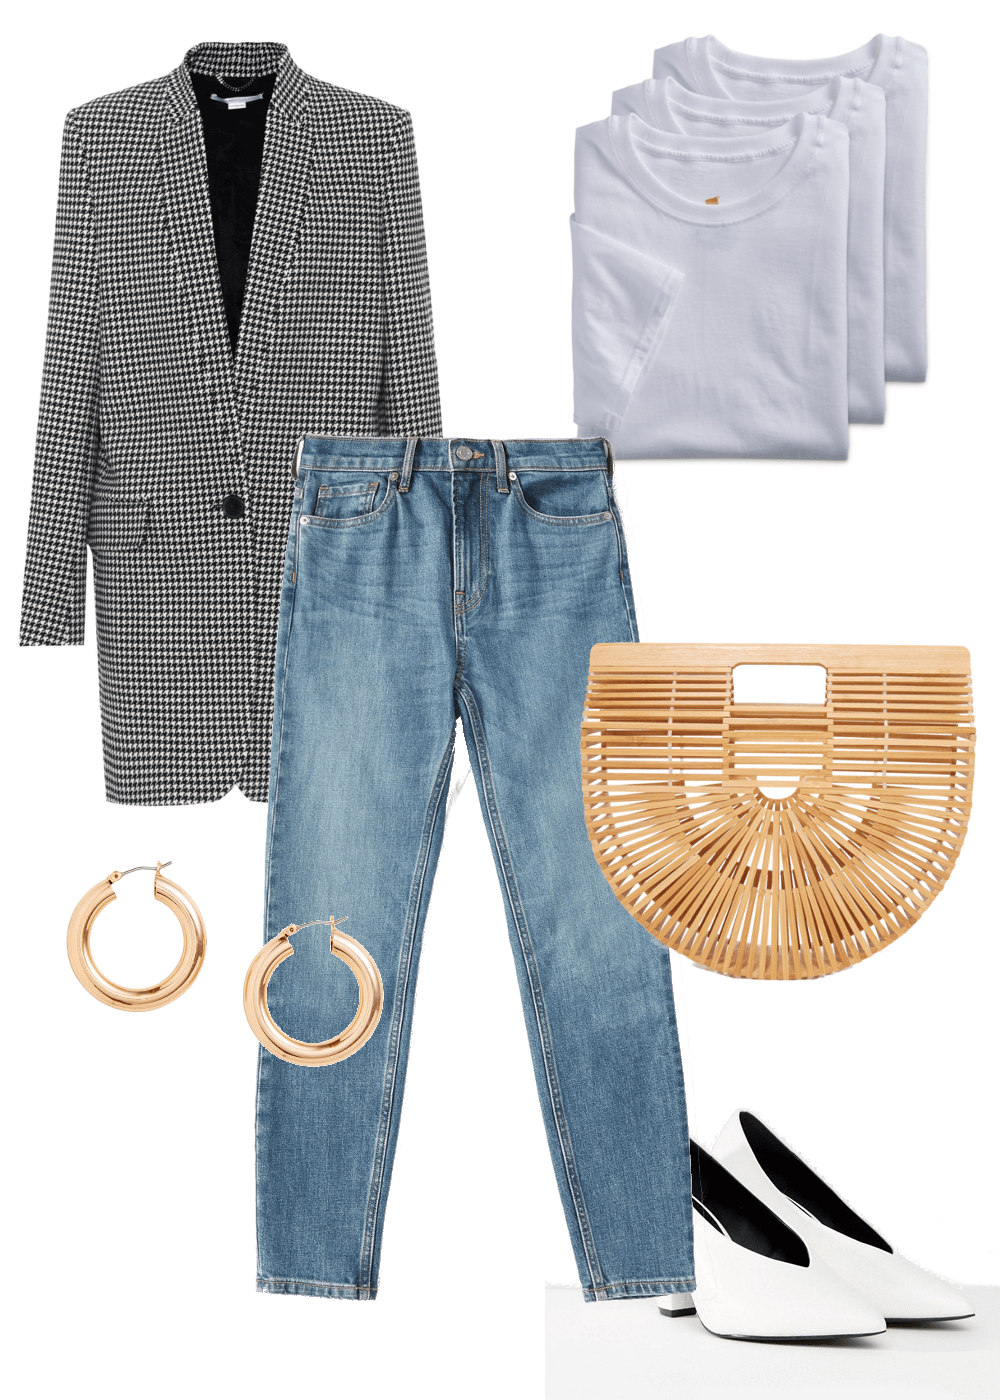 Fall Uniform: a collection of basic wardrobe staples to have an elegant, yet relaxed look this fall season.